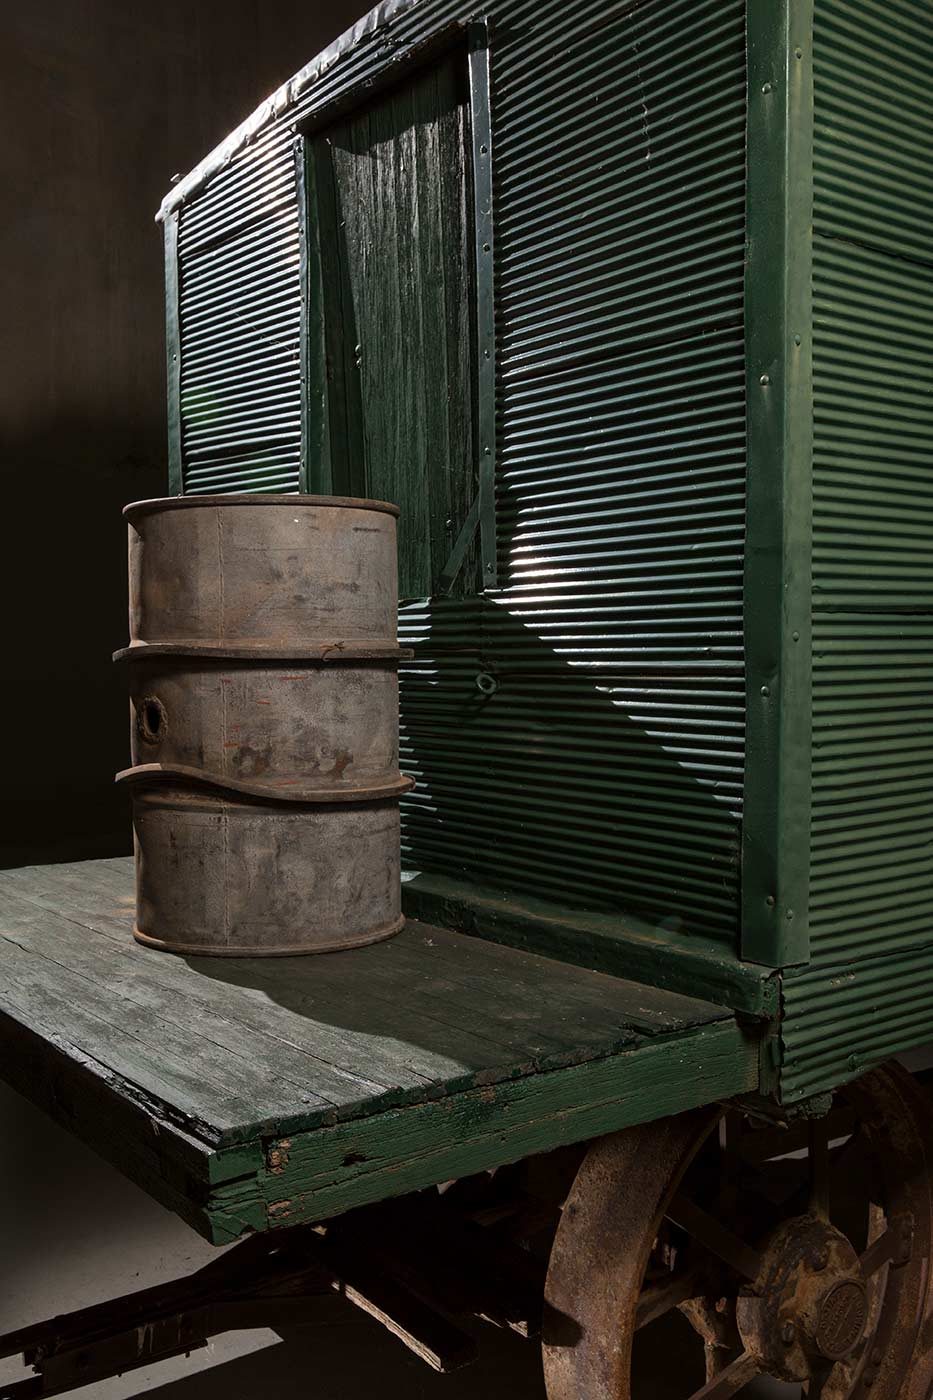 A cook's galley in the form of a metal-clad, timber and iron-framed box raised on wagon wheels. This view is of an outdoor table with drum seated on it, fixed to the rear of the galley. - click to view larger image